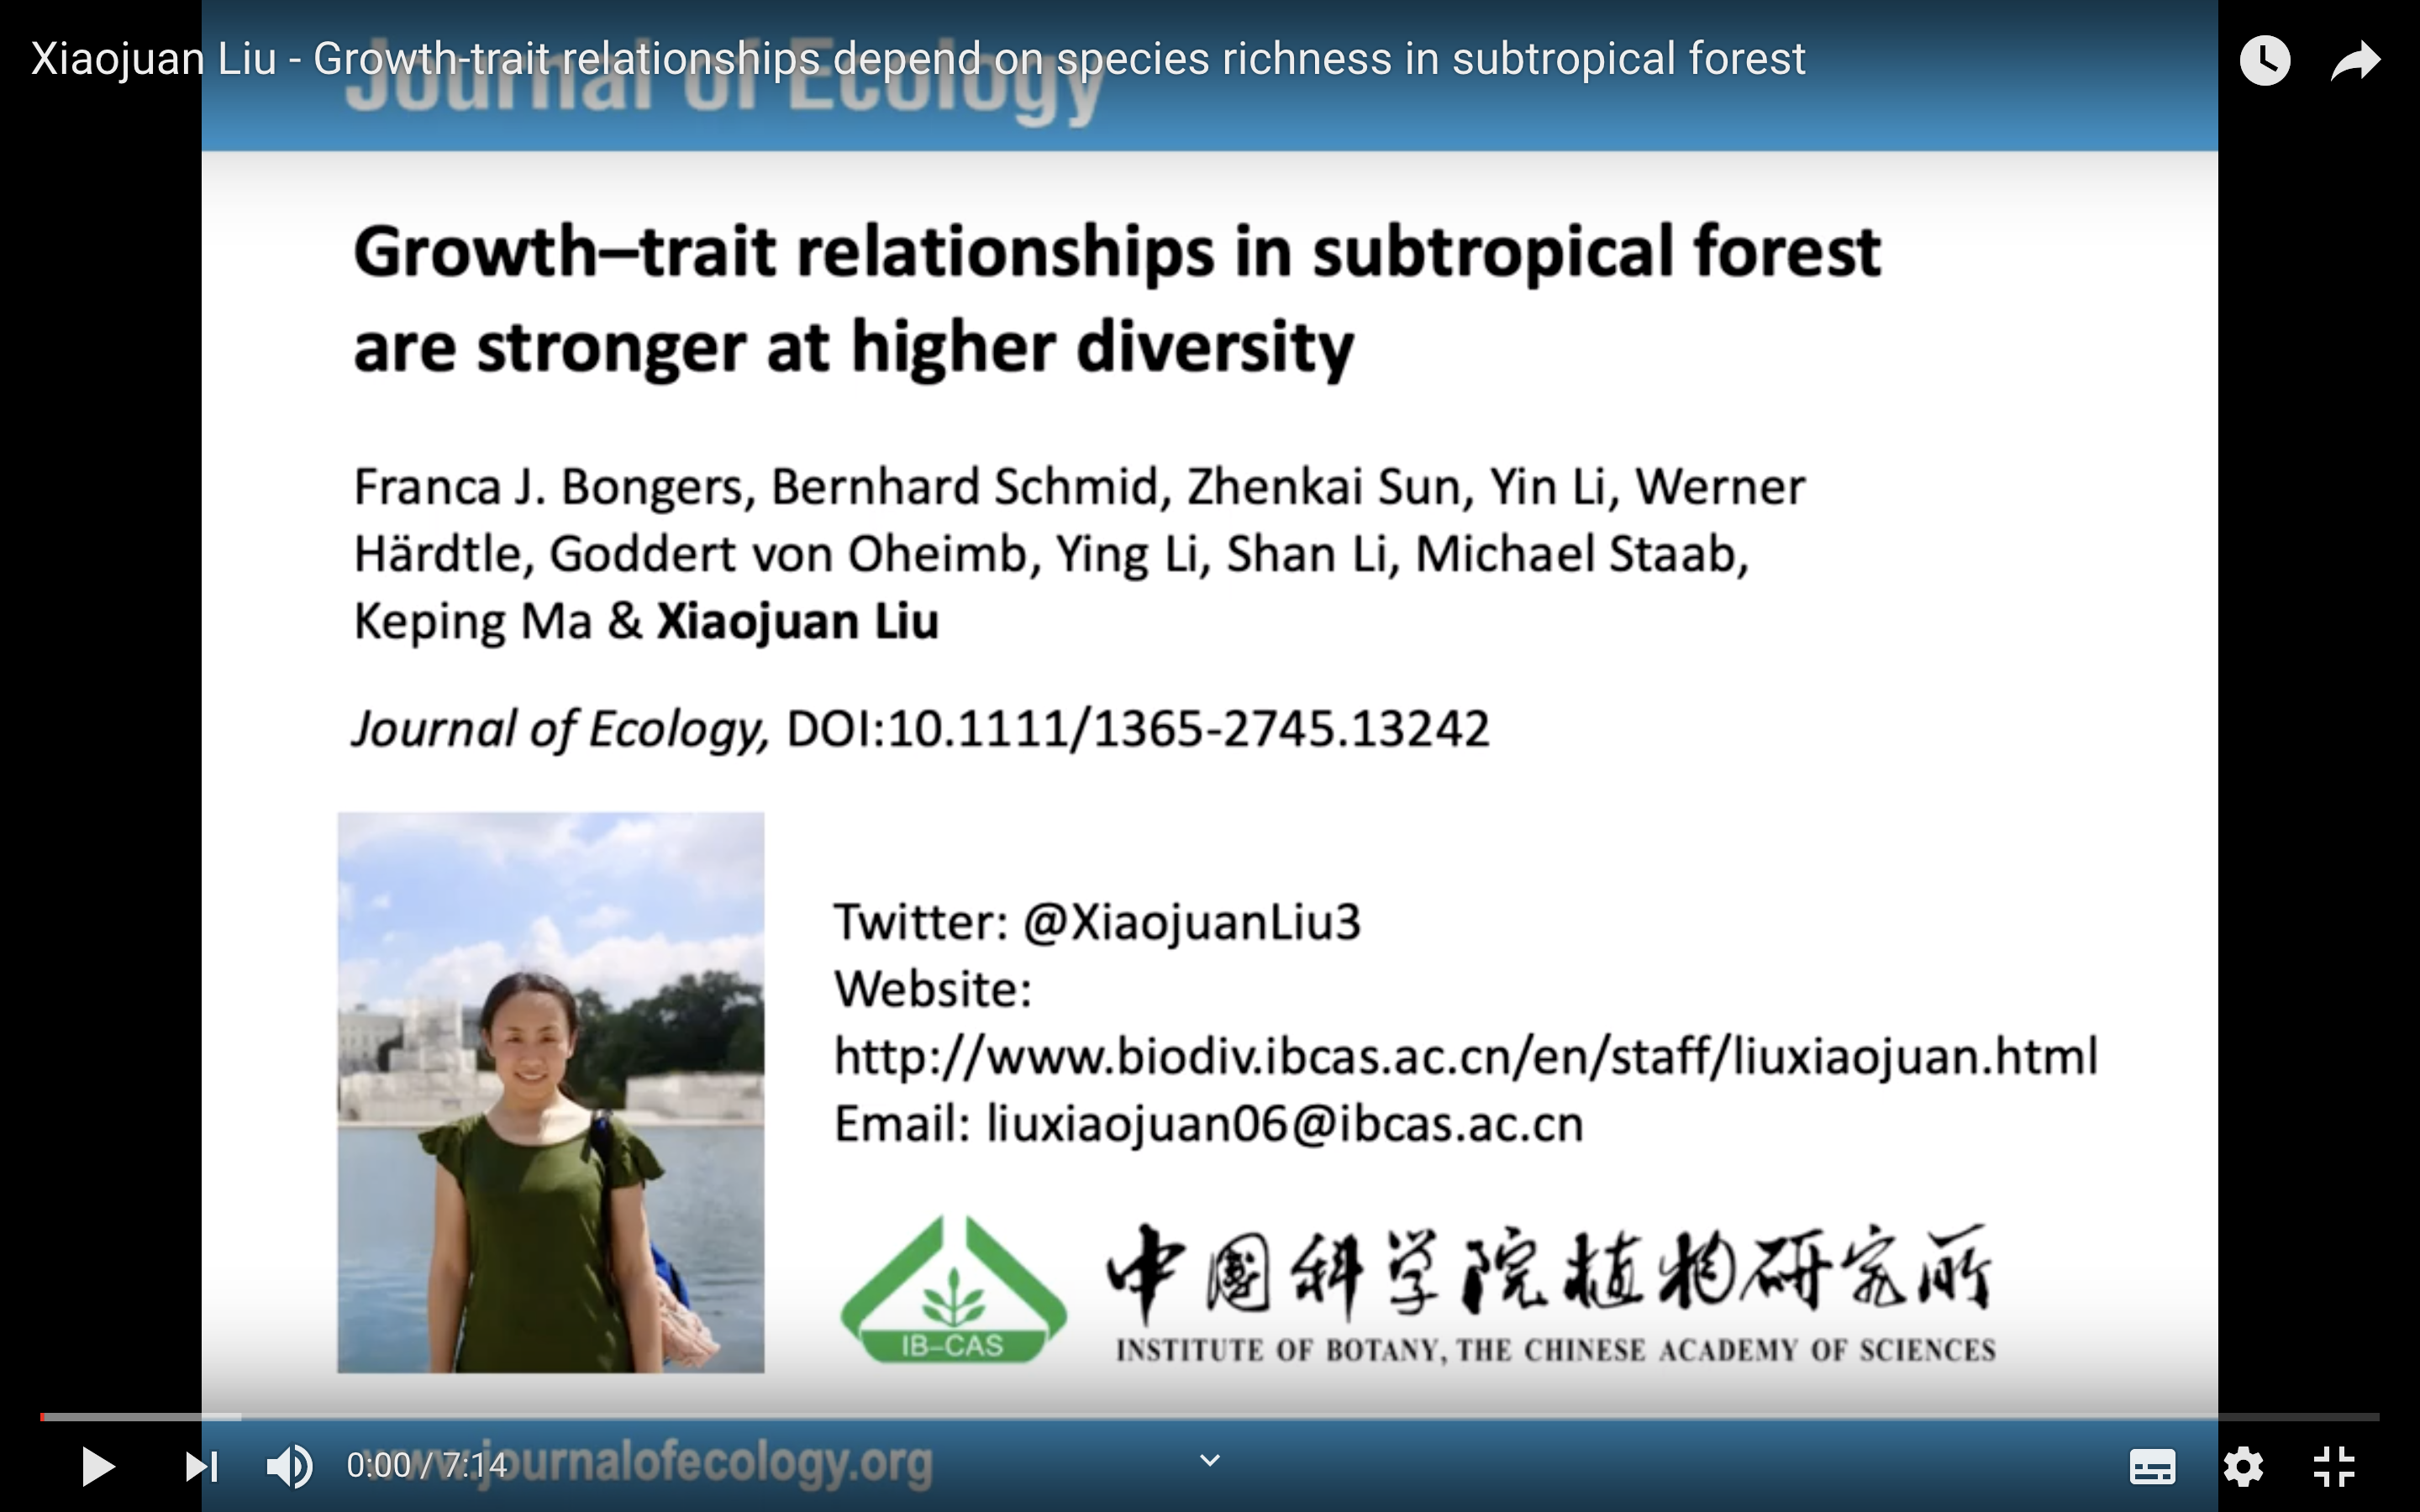 Growth-trait relationships depend on species richness in subtropical forest